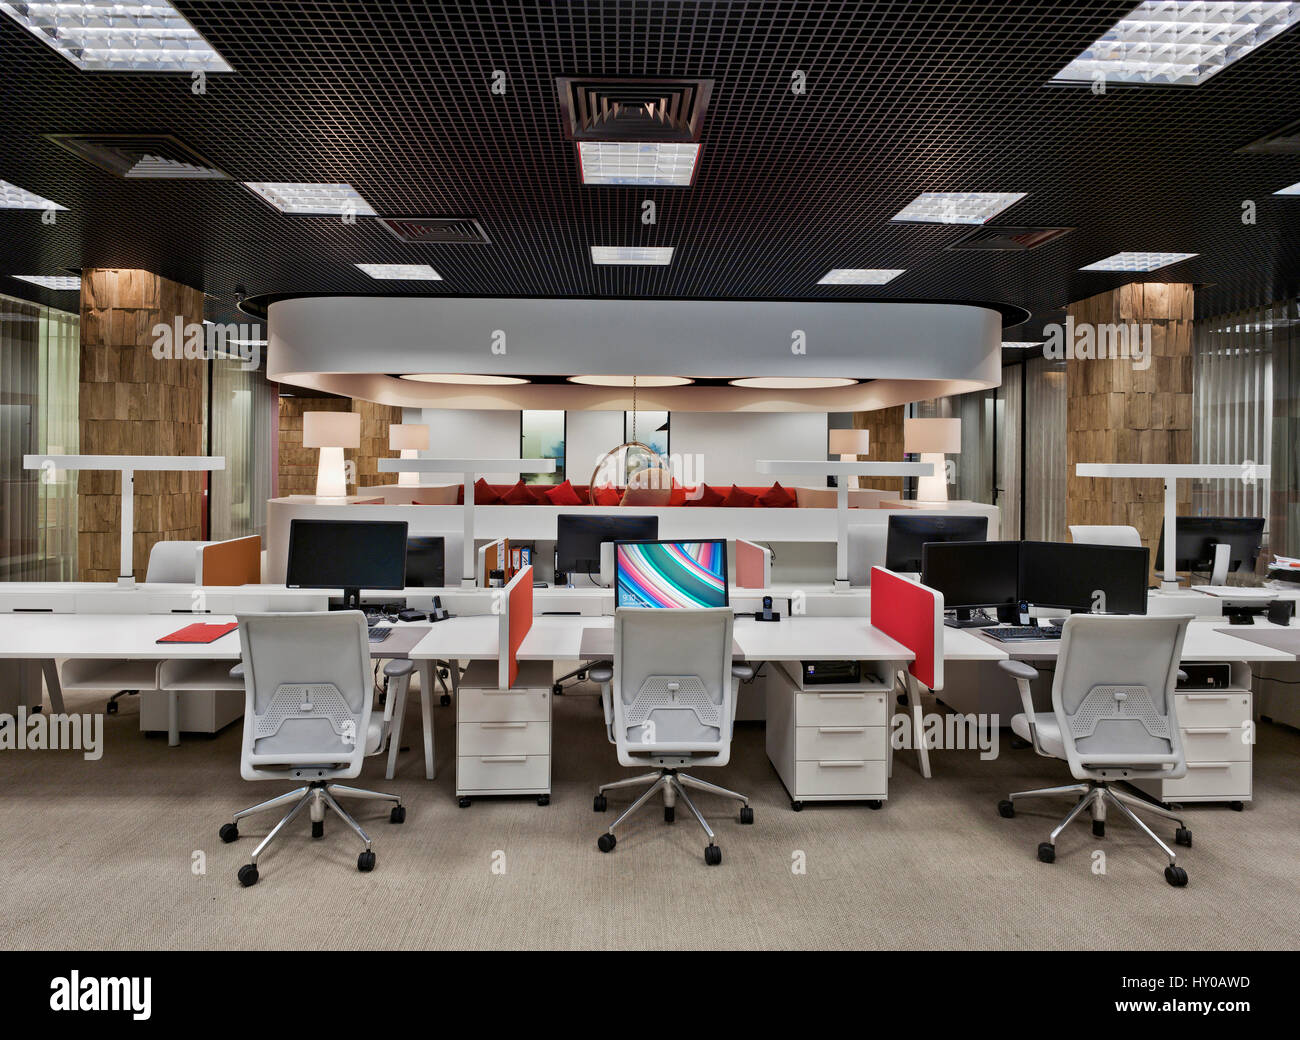 Moscow Interior Office Working Design Decor Modern Workplace Stock Photo Alamy